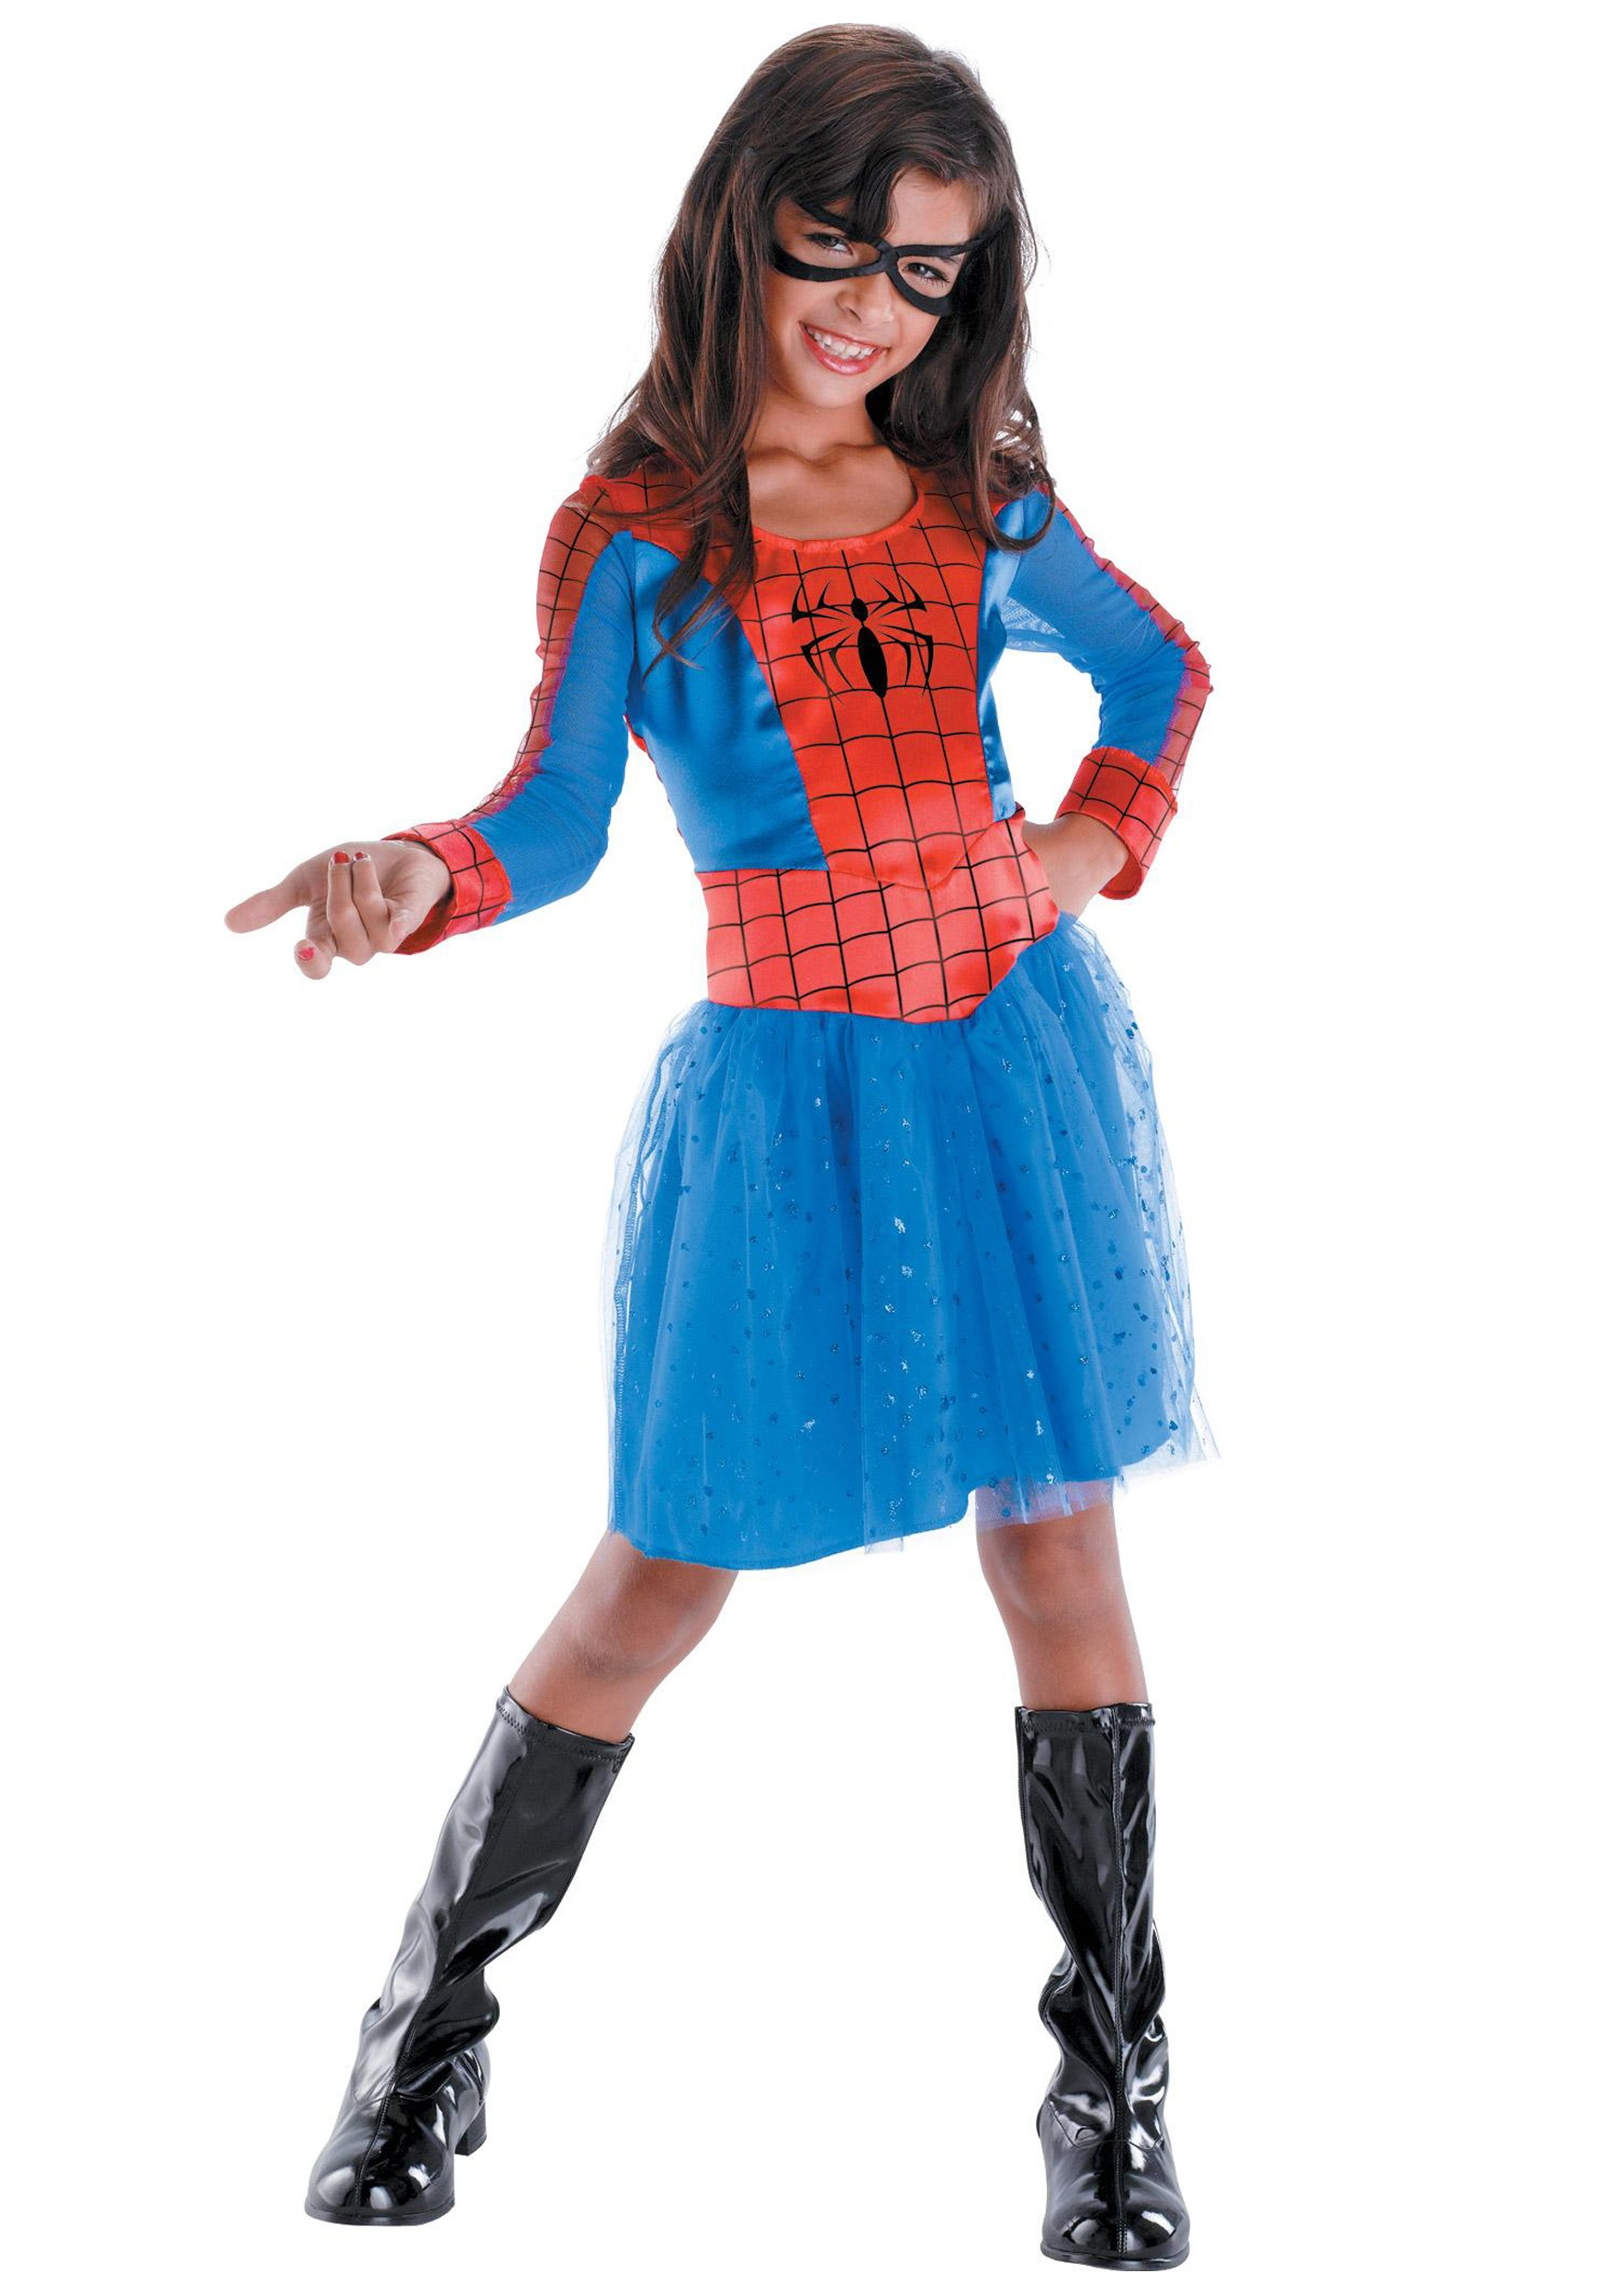 Back toBaby Costumes, Girl Costumes, Kids Costumes, Kids Spiderman Costumes, Spiderman Costumes, Superhero Costumes, Theme Costumes, Toddler Costumes